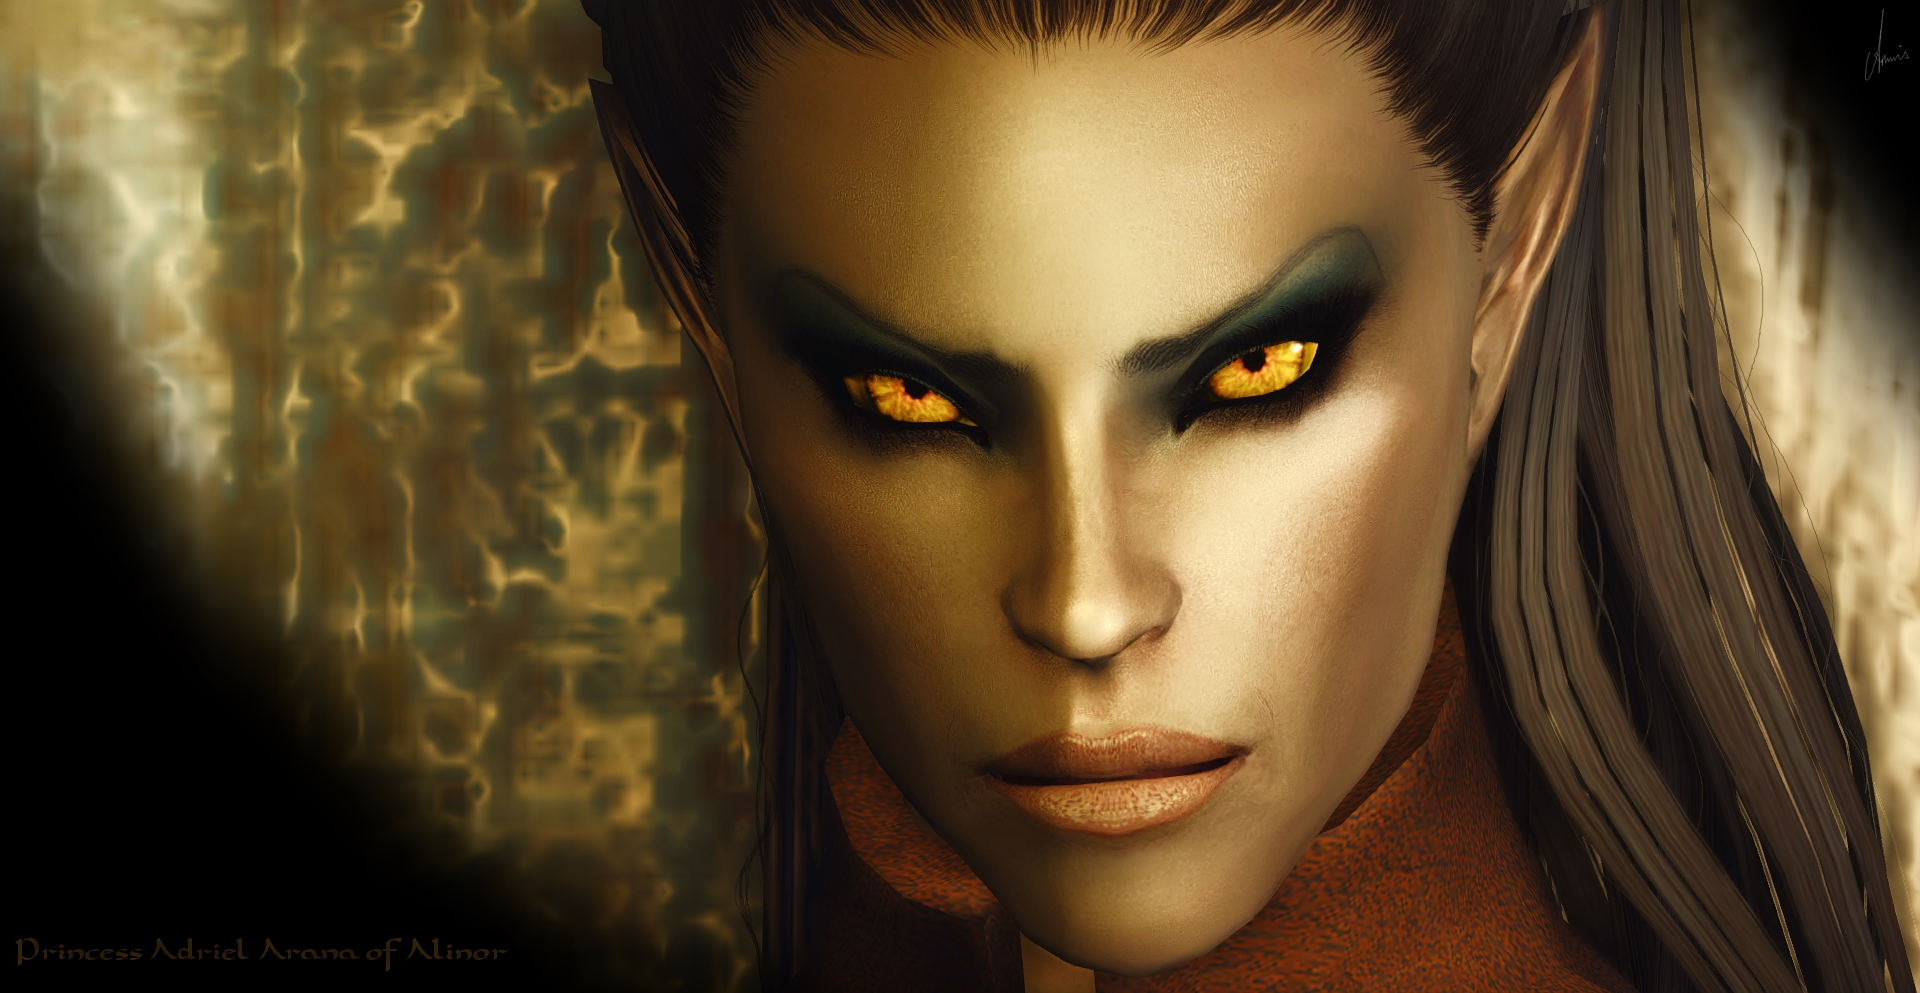 gold__the_color_of_evil_by_amnis406-d9g7s70